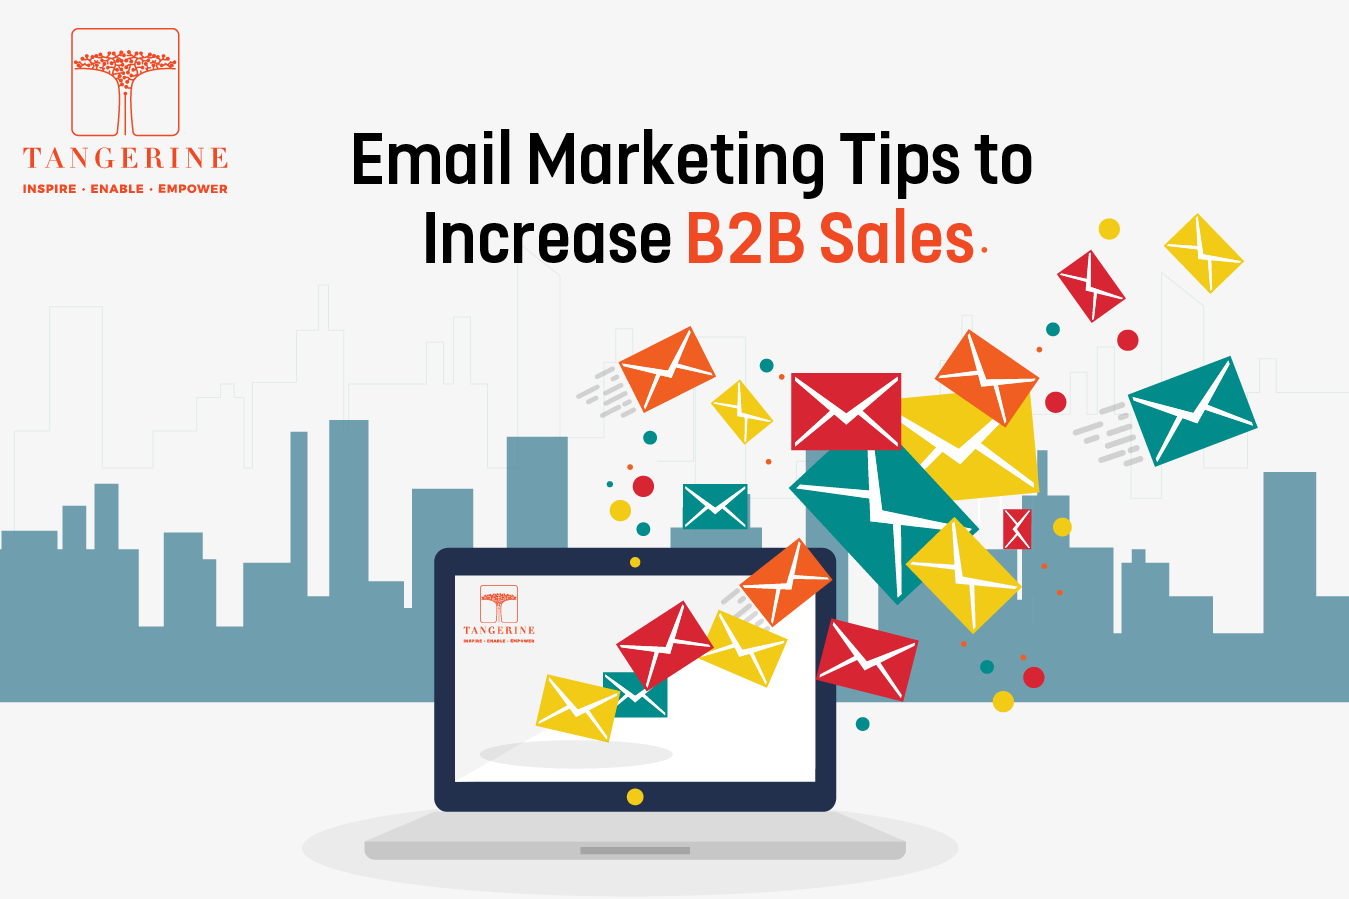 Email Marketing Tips to Increase B2B Sales